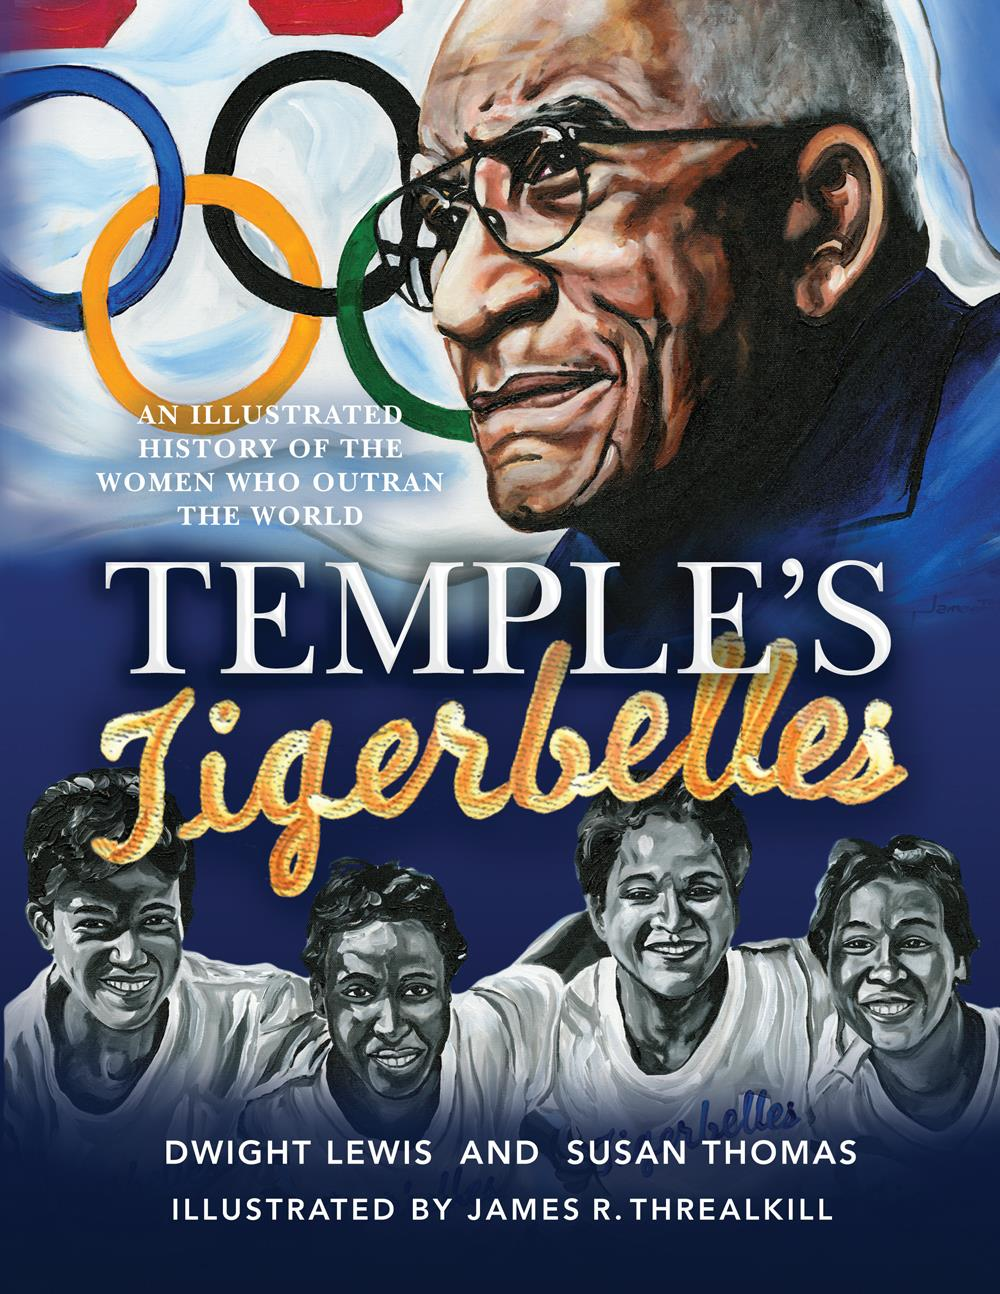 AAA PODCAST TALKS WITH 'TEMPLE'S TIGERBELLES' AUTHOR, LOOKS AT LANDING SPOTS FOR PELICANS' ANTHONY DAVIS